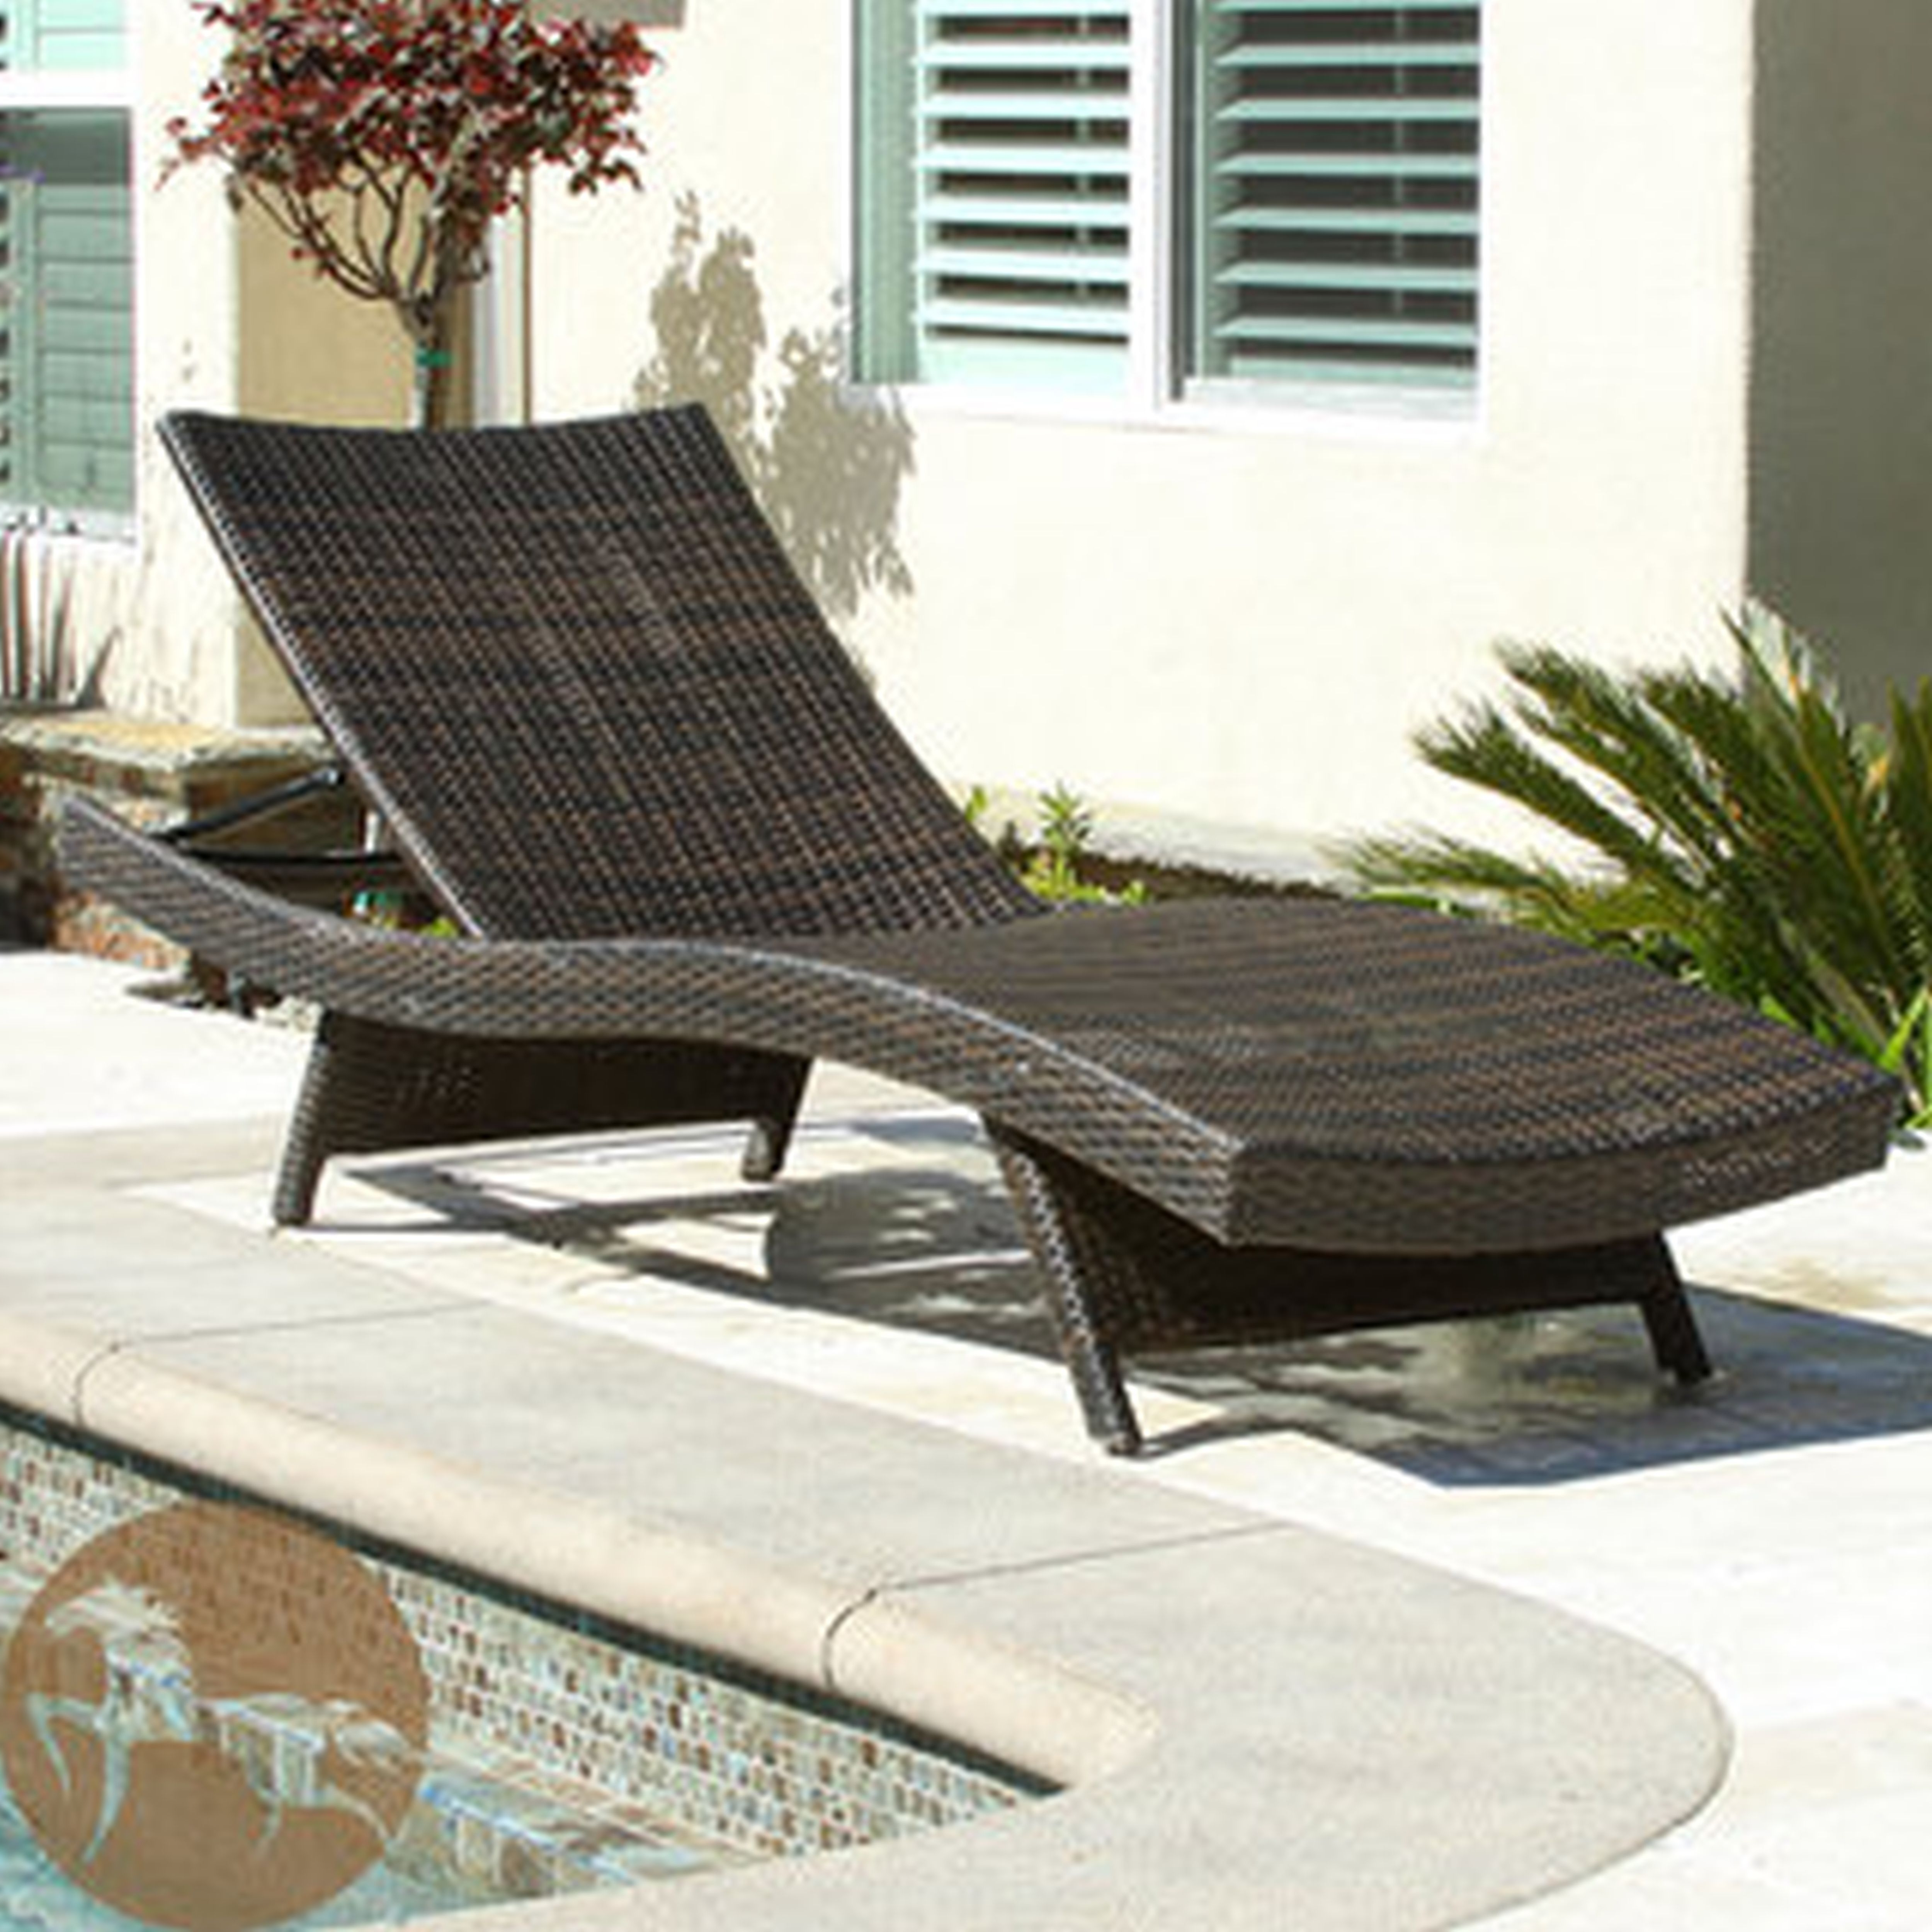 Current Chaise Lounge Chairs For Poolside Throughout Outdoor : Chaise Lounge Sofa Lowes Patio Furniture Clearance (View 5 of 15)